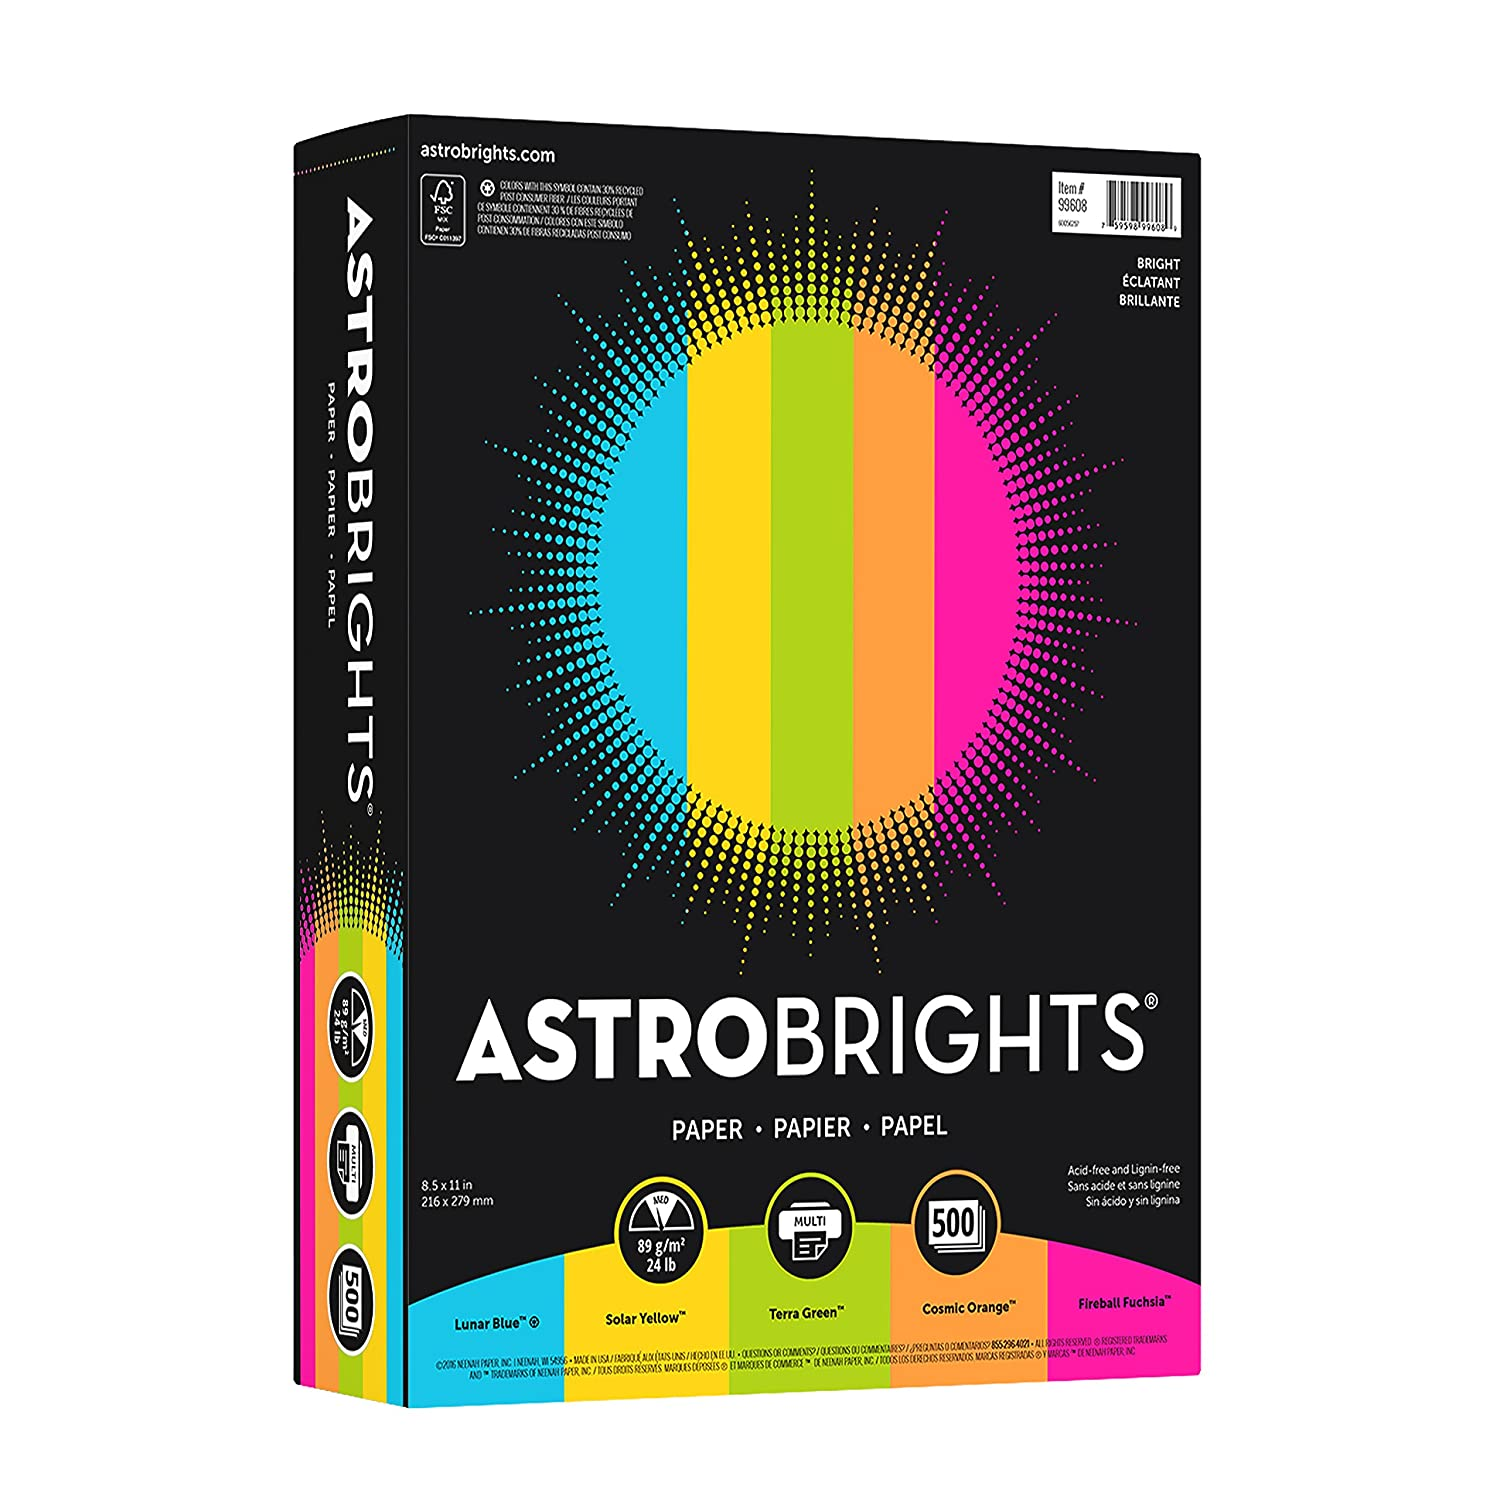 Office school paper amazon office school supplies paper astrobrights color paper malvernweather Images